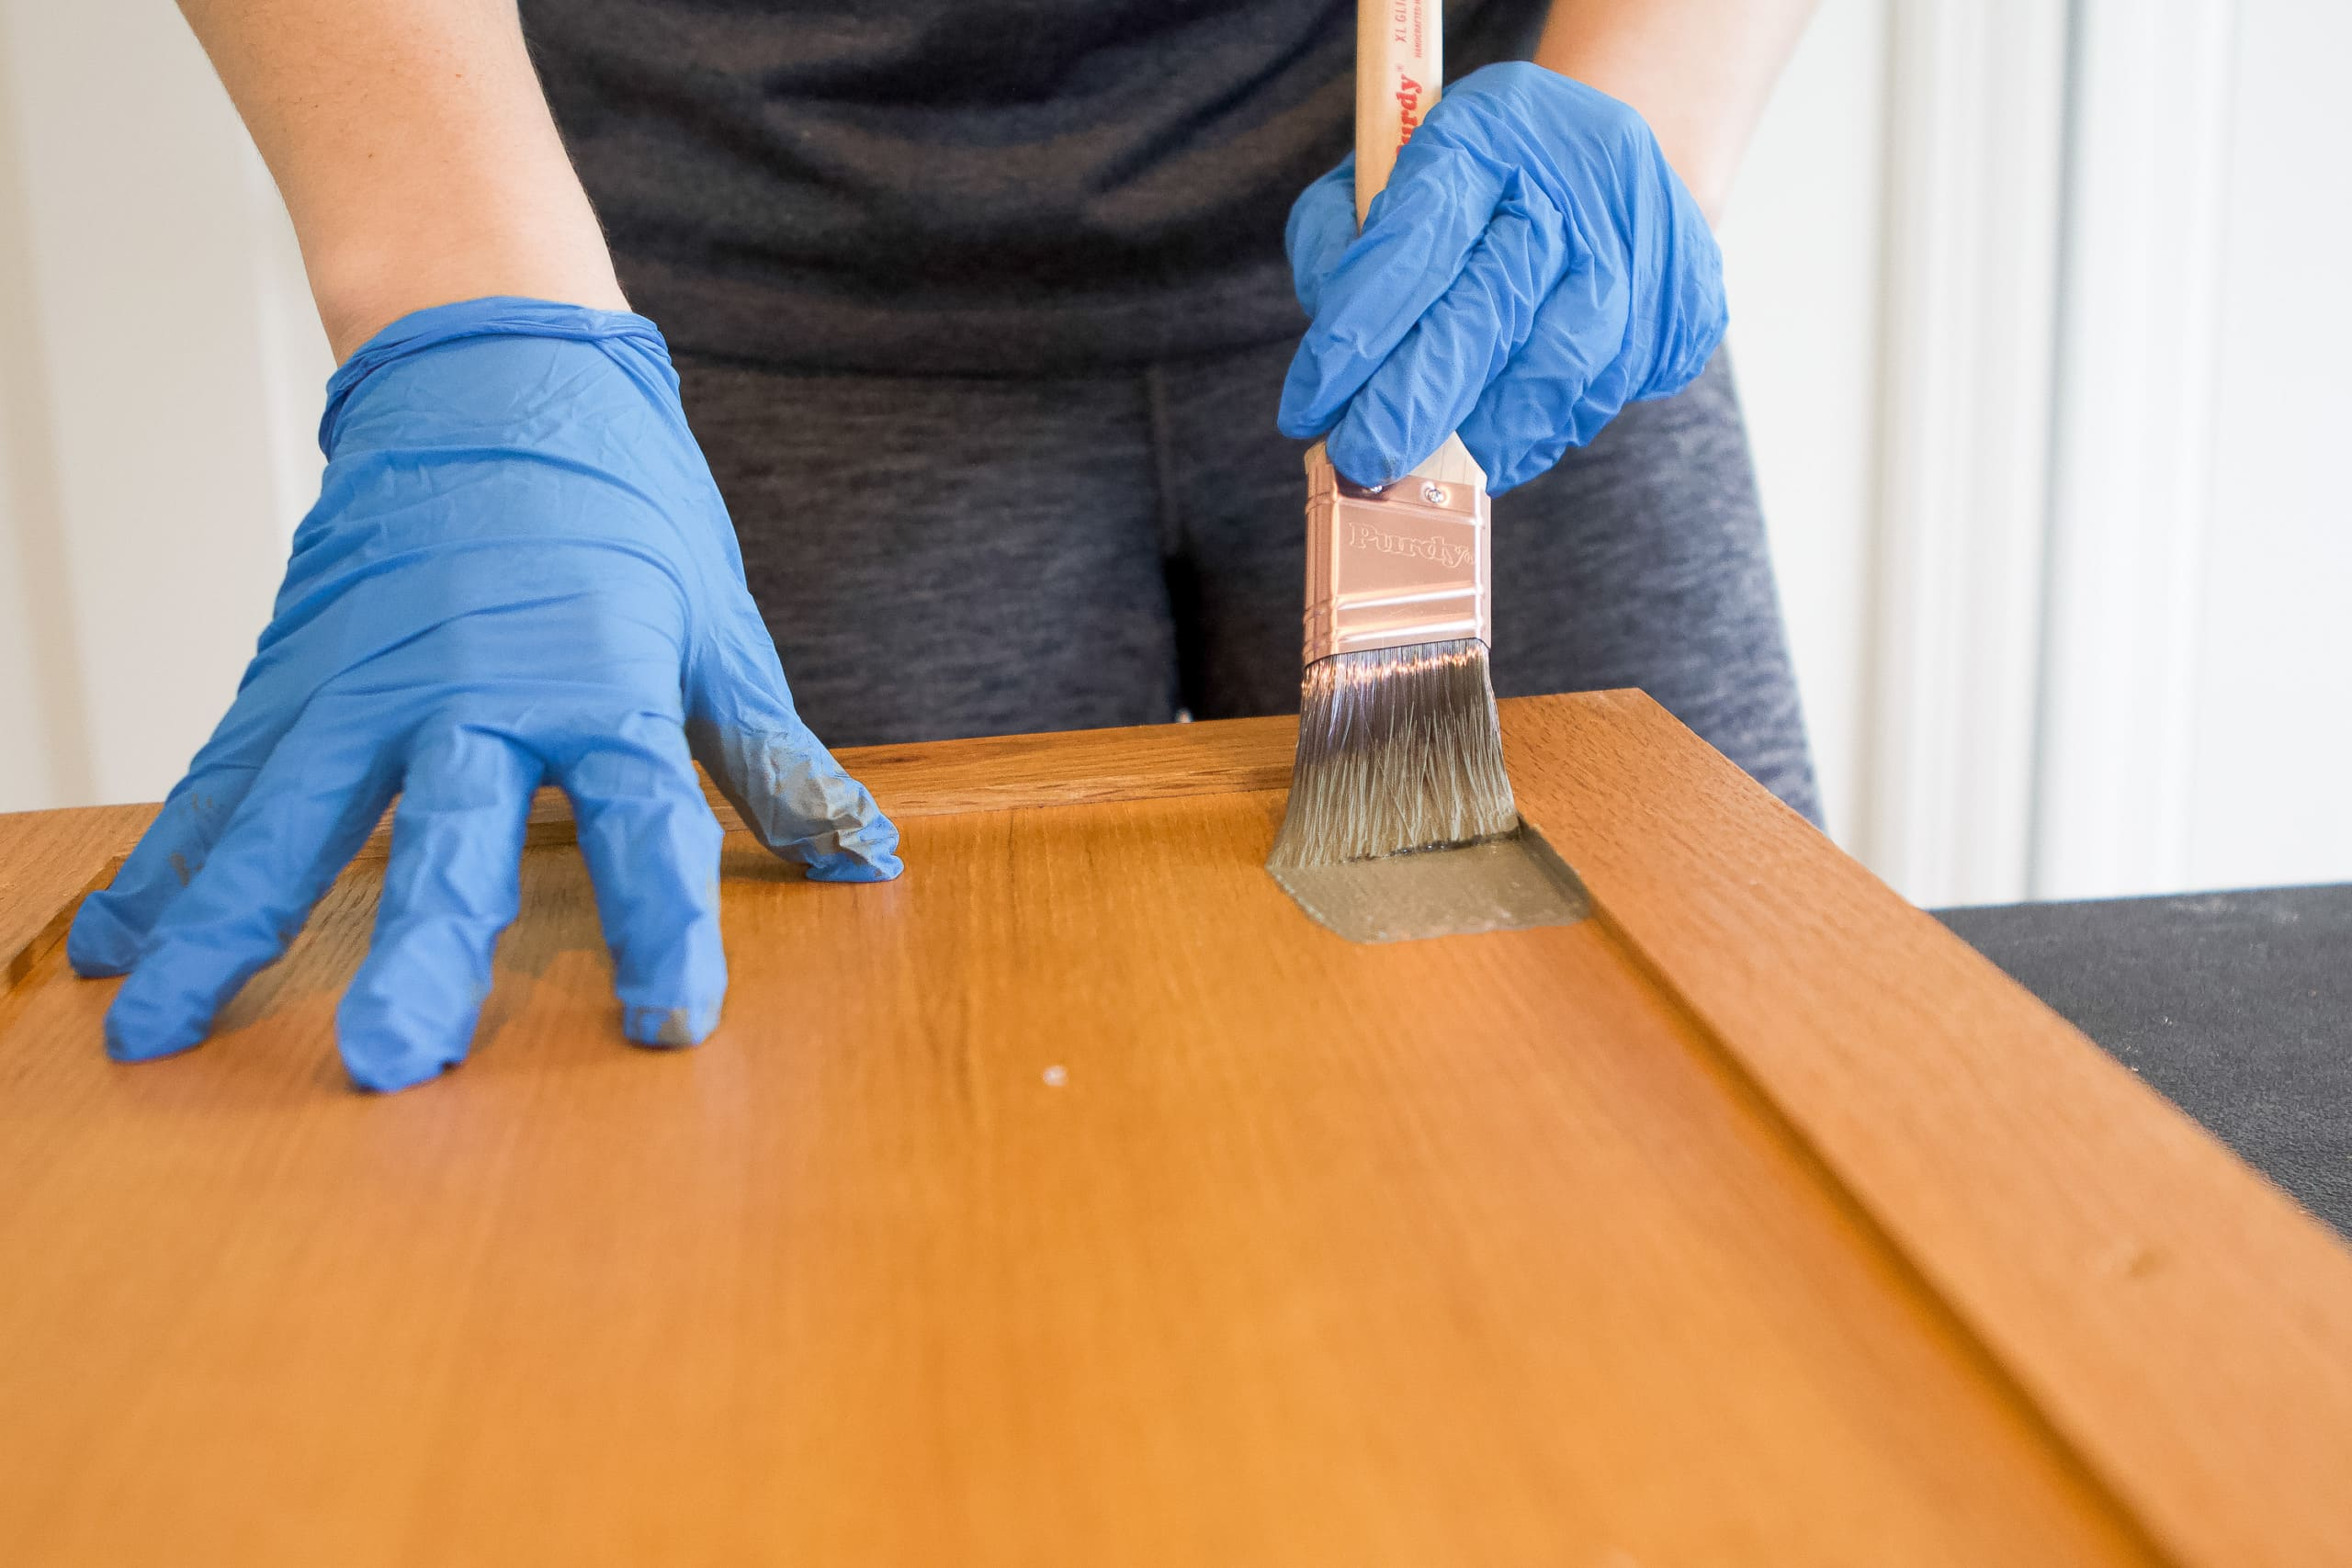 How to use the cabinet transformations kit